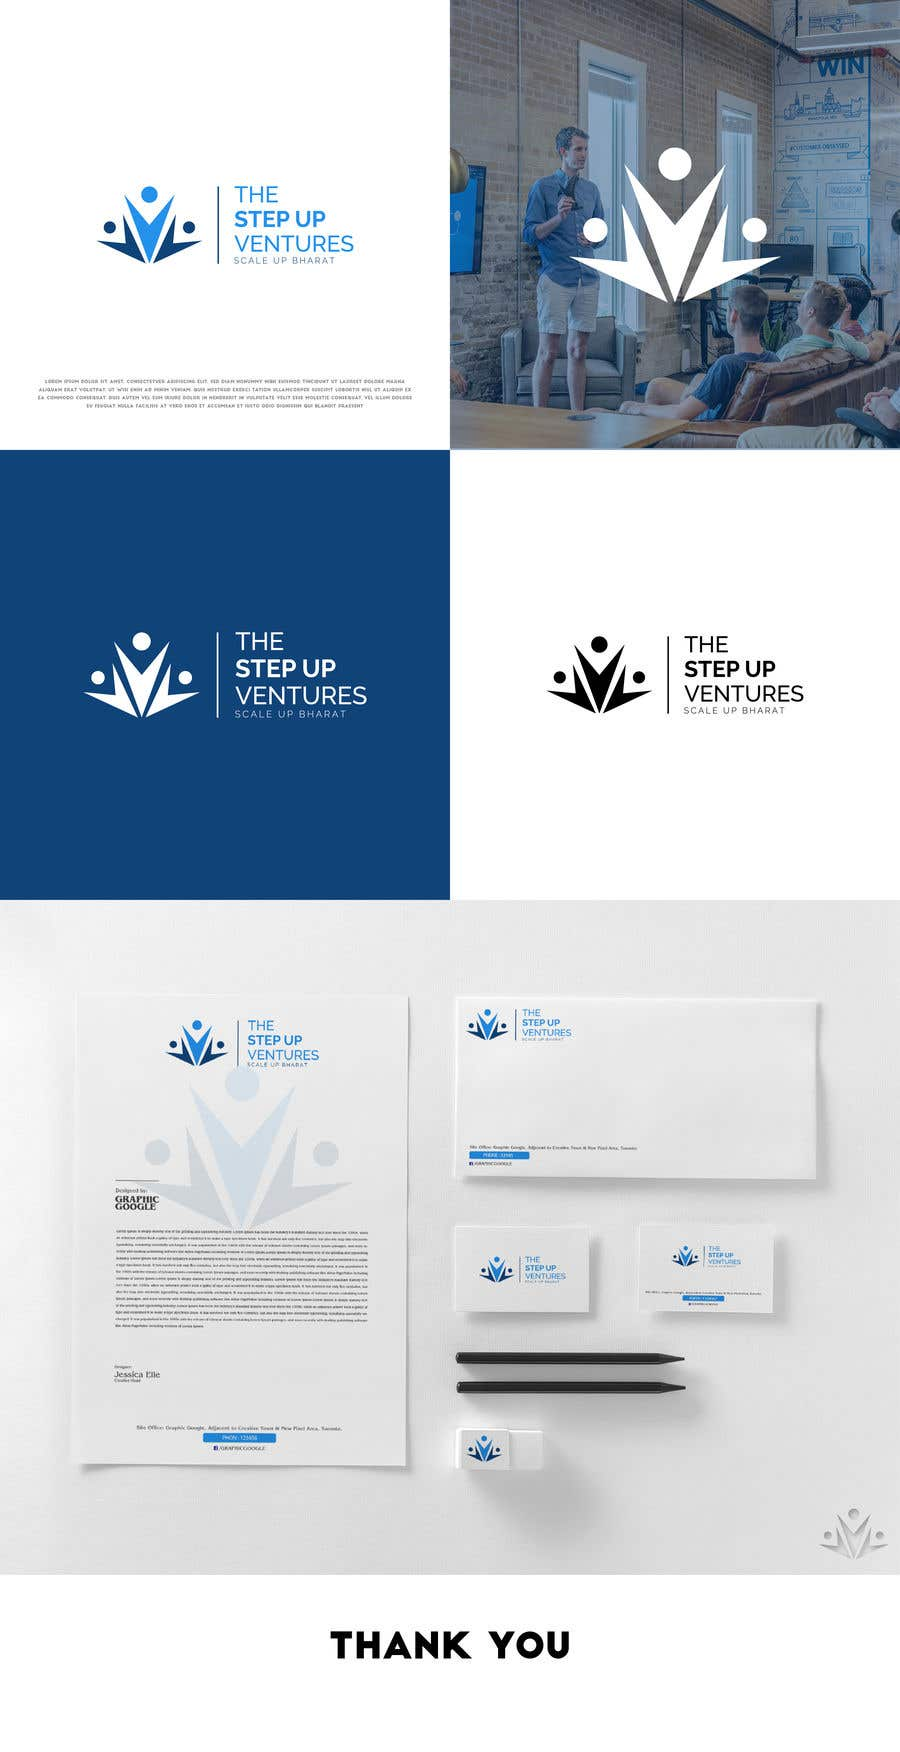 Konkurrenceindlæg #                                        130                                      for                                         Logo Contest and Basic Stationary Design - Business Card, Letter Head, and PPT Template